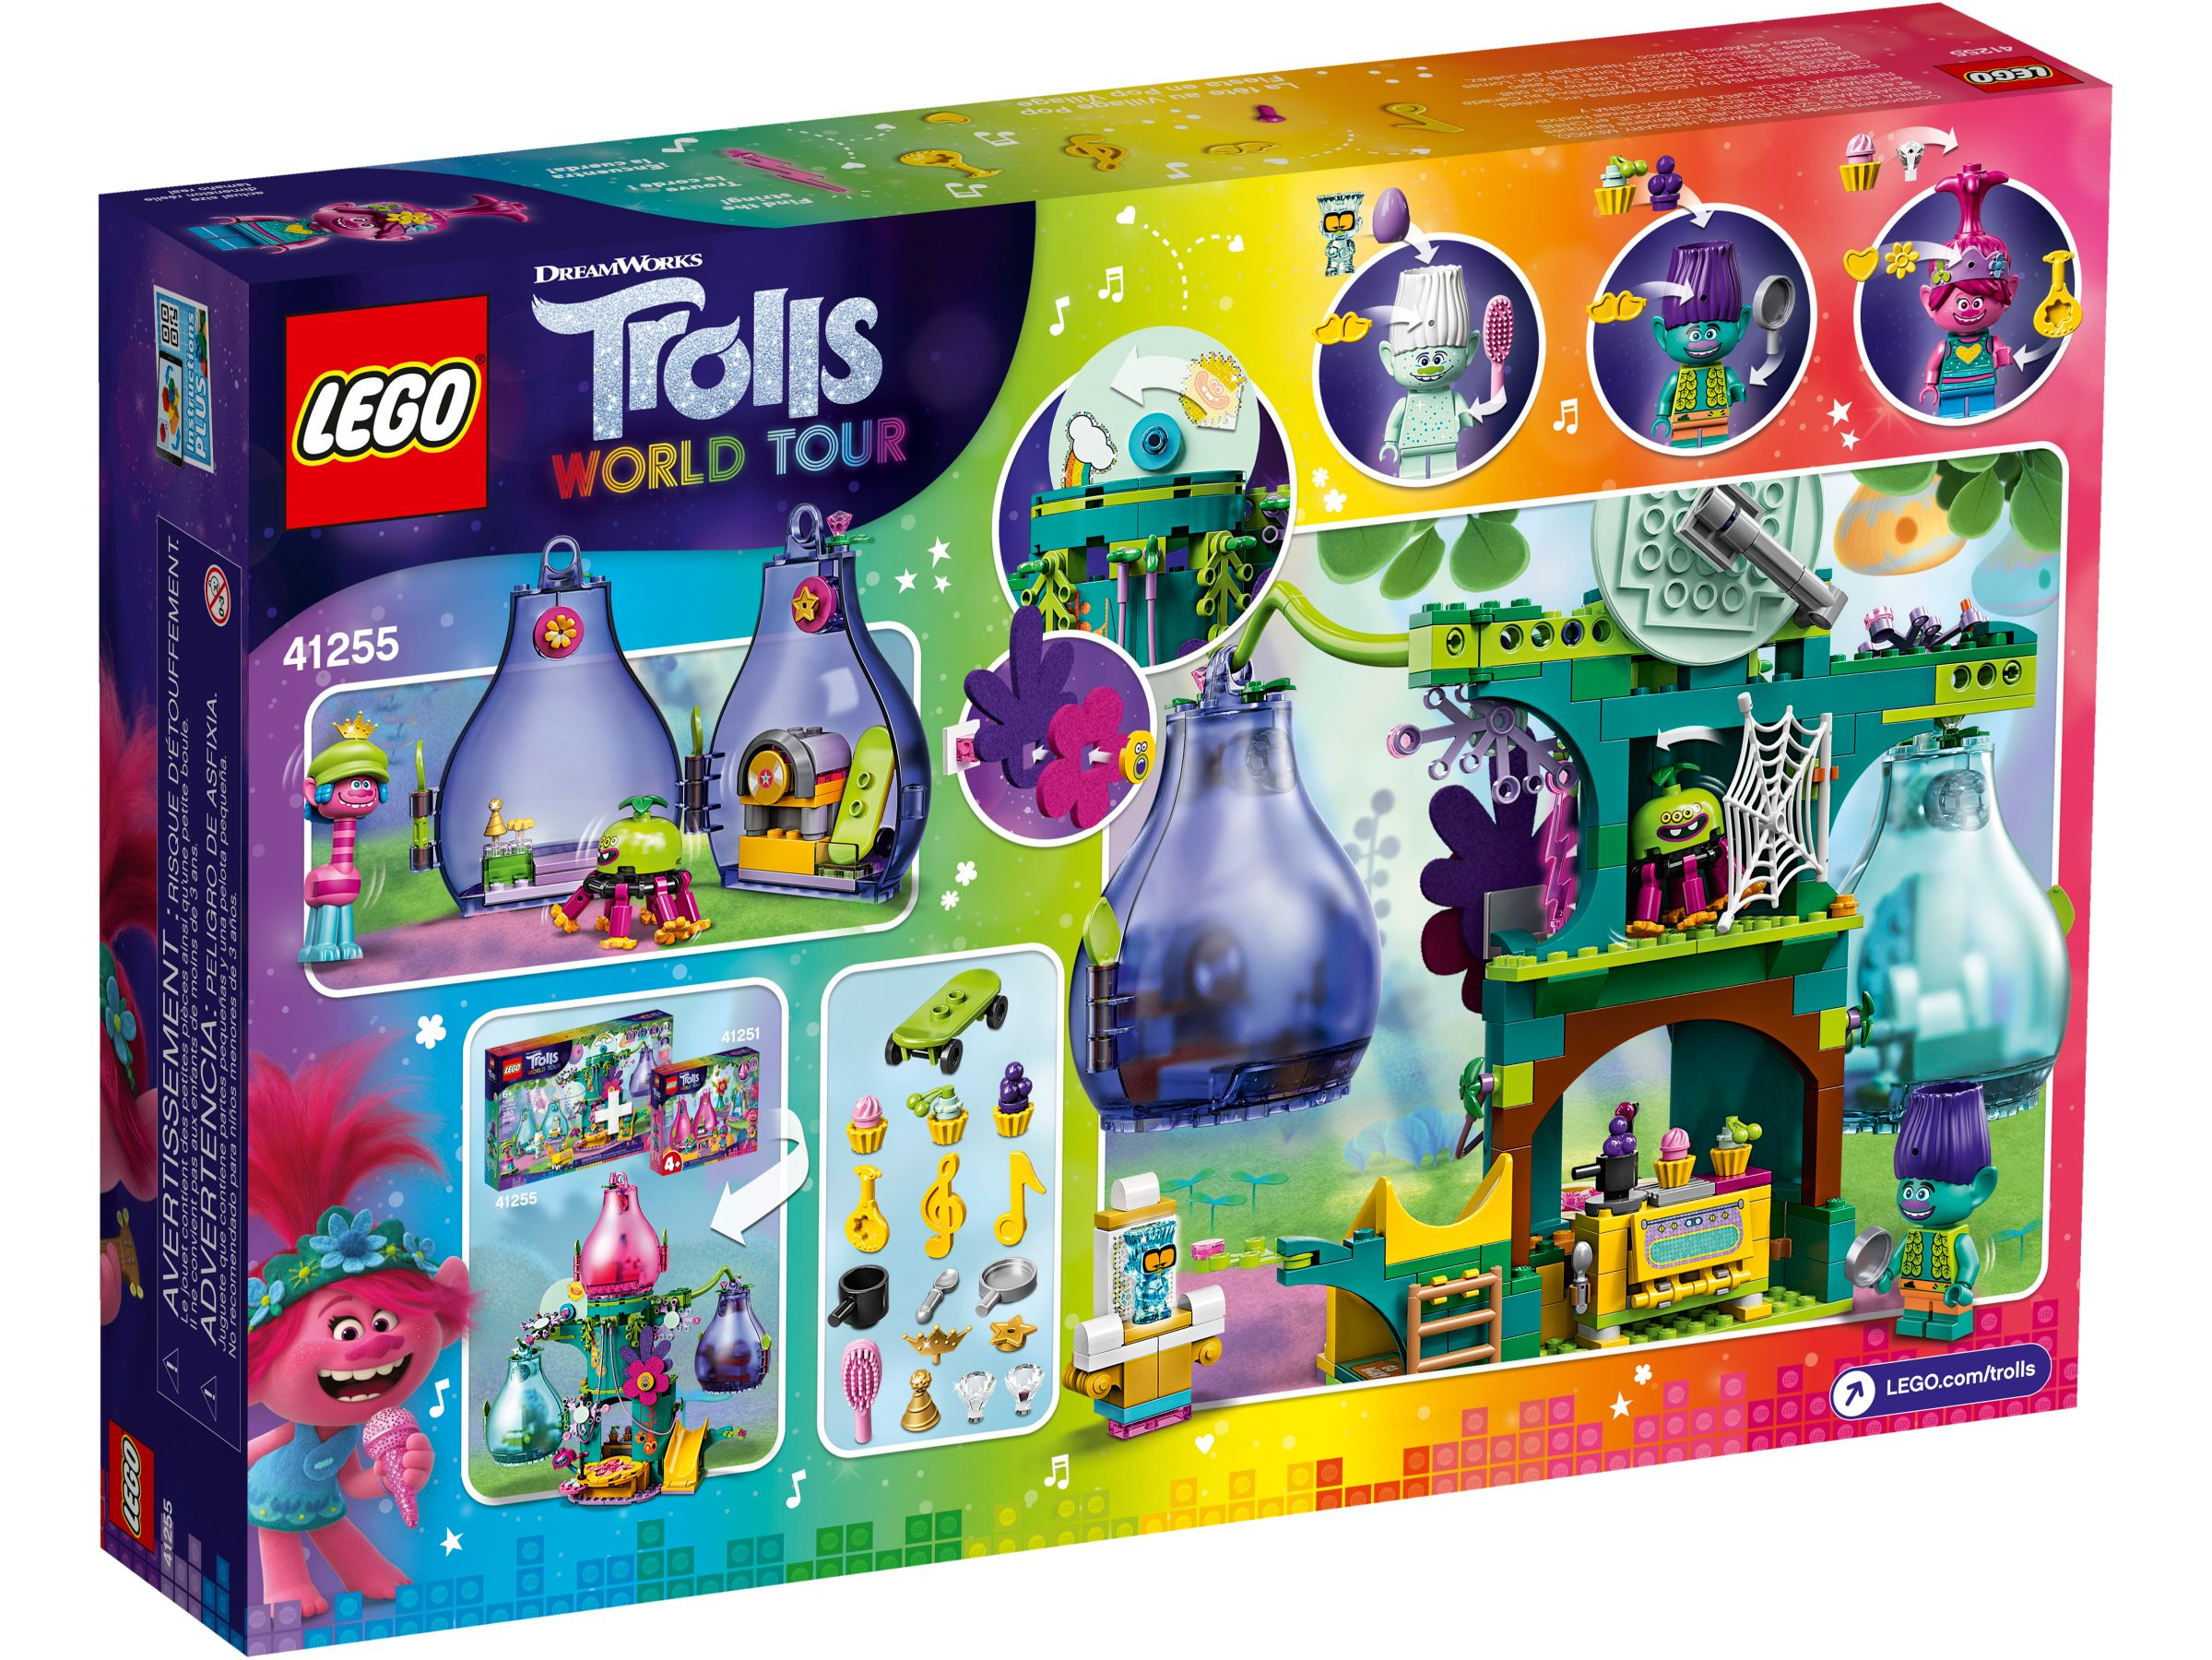 LEGO Trolls: World Tour 41255 Party in Pop City LEGO_41255_alt5.jpg